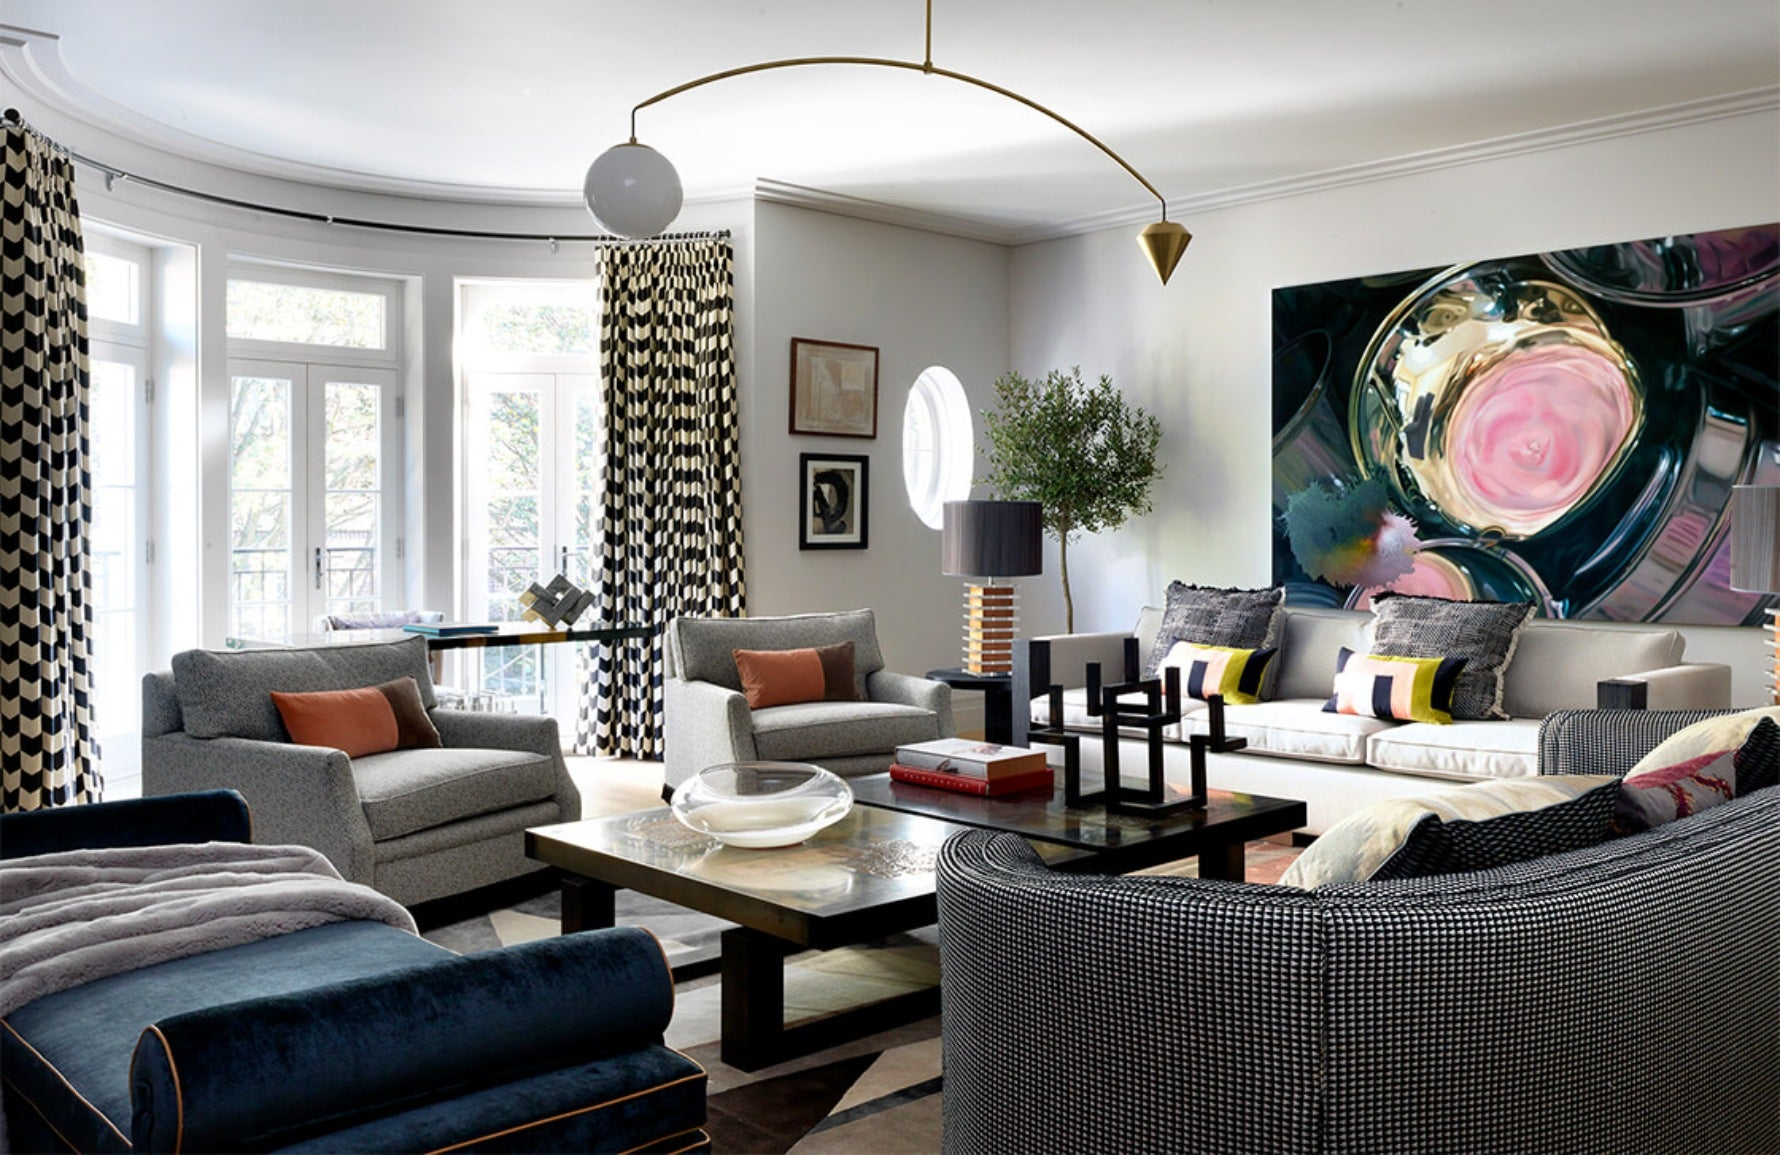 How To Arrange Cushions On A Sofa 9 Style Ideas Luxdeco